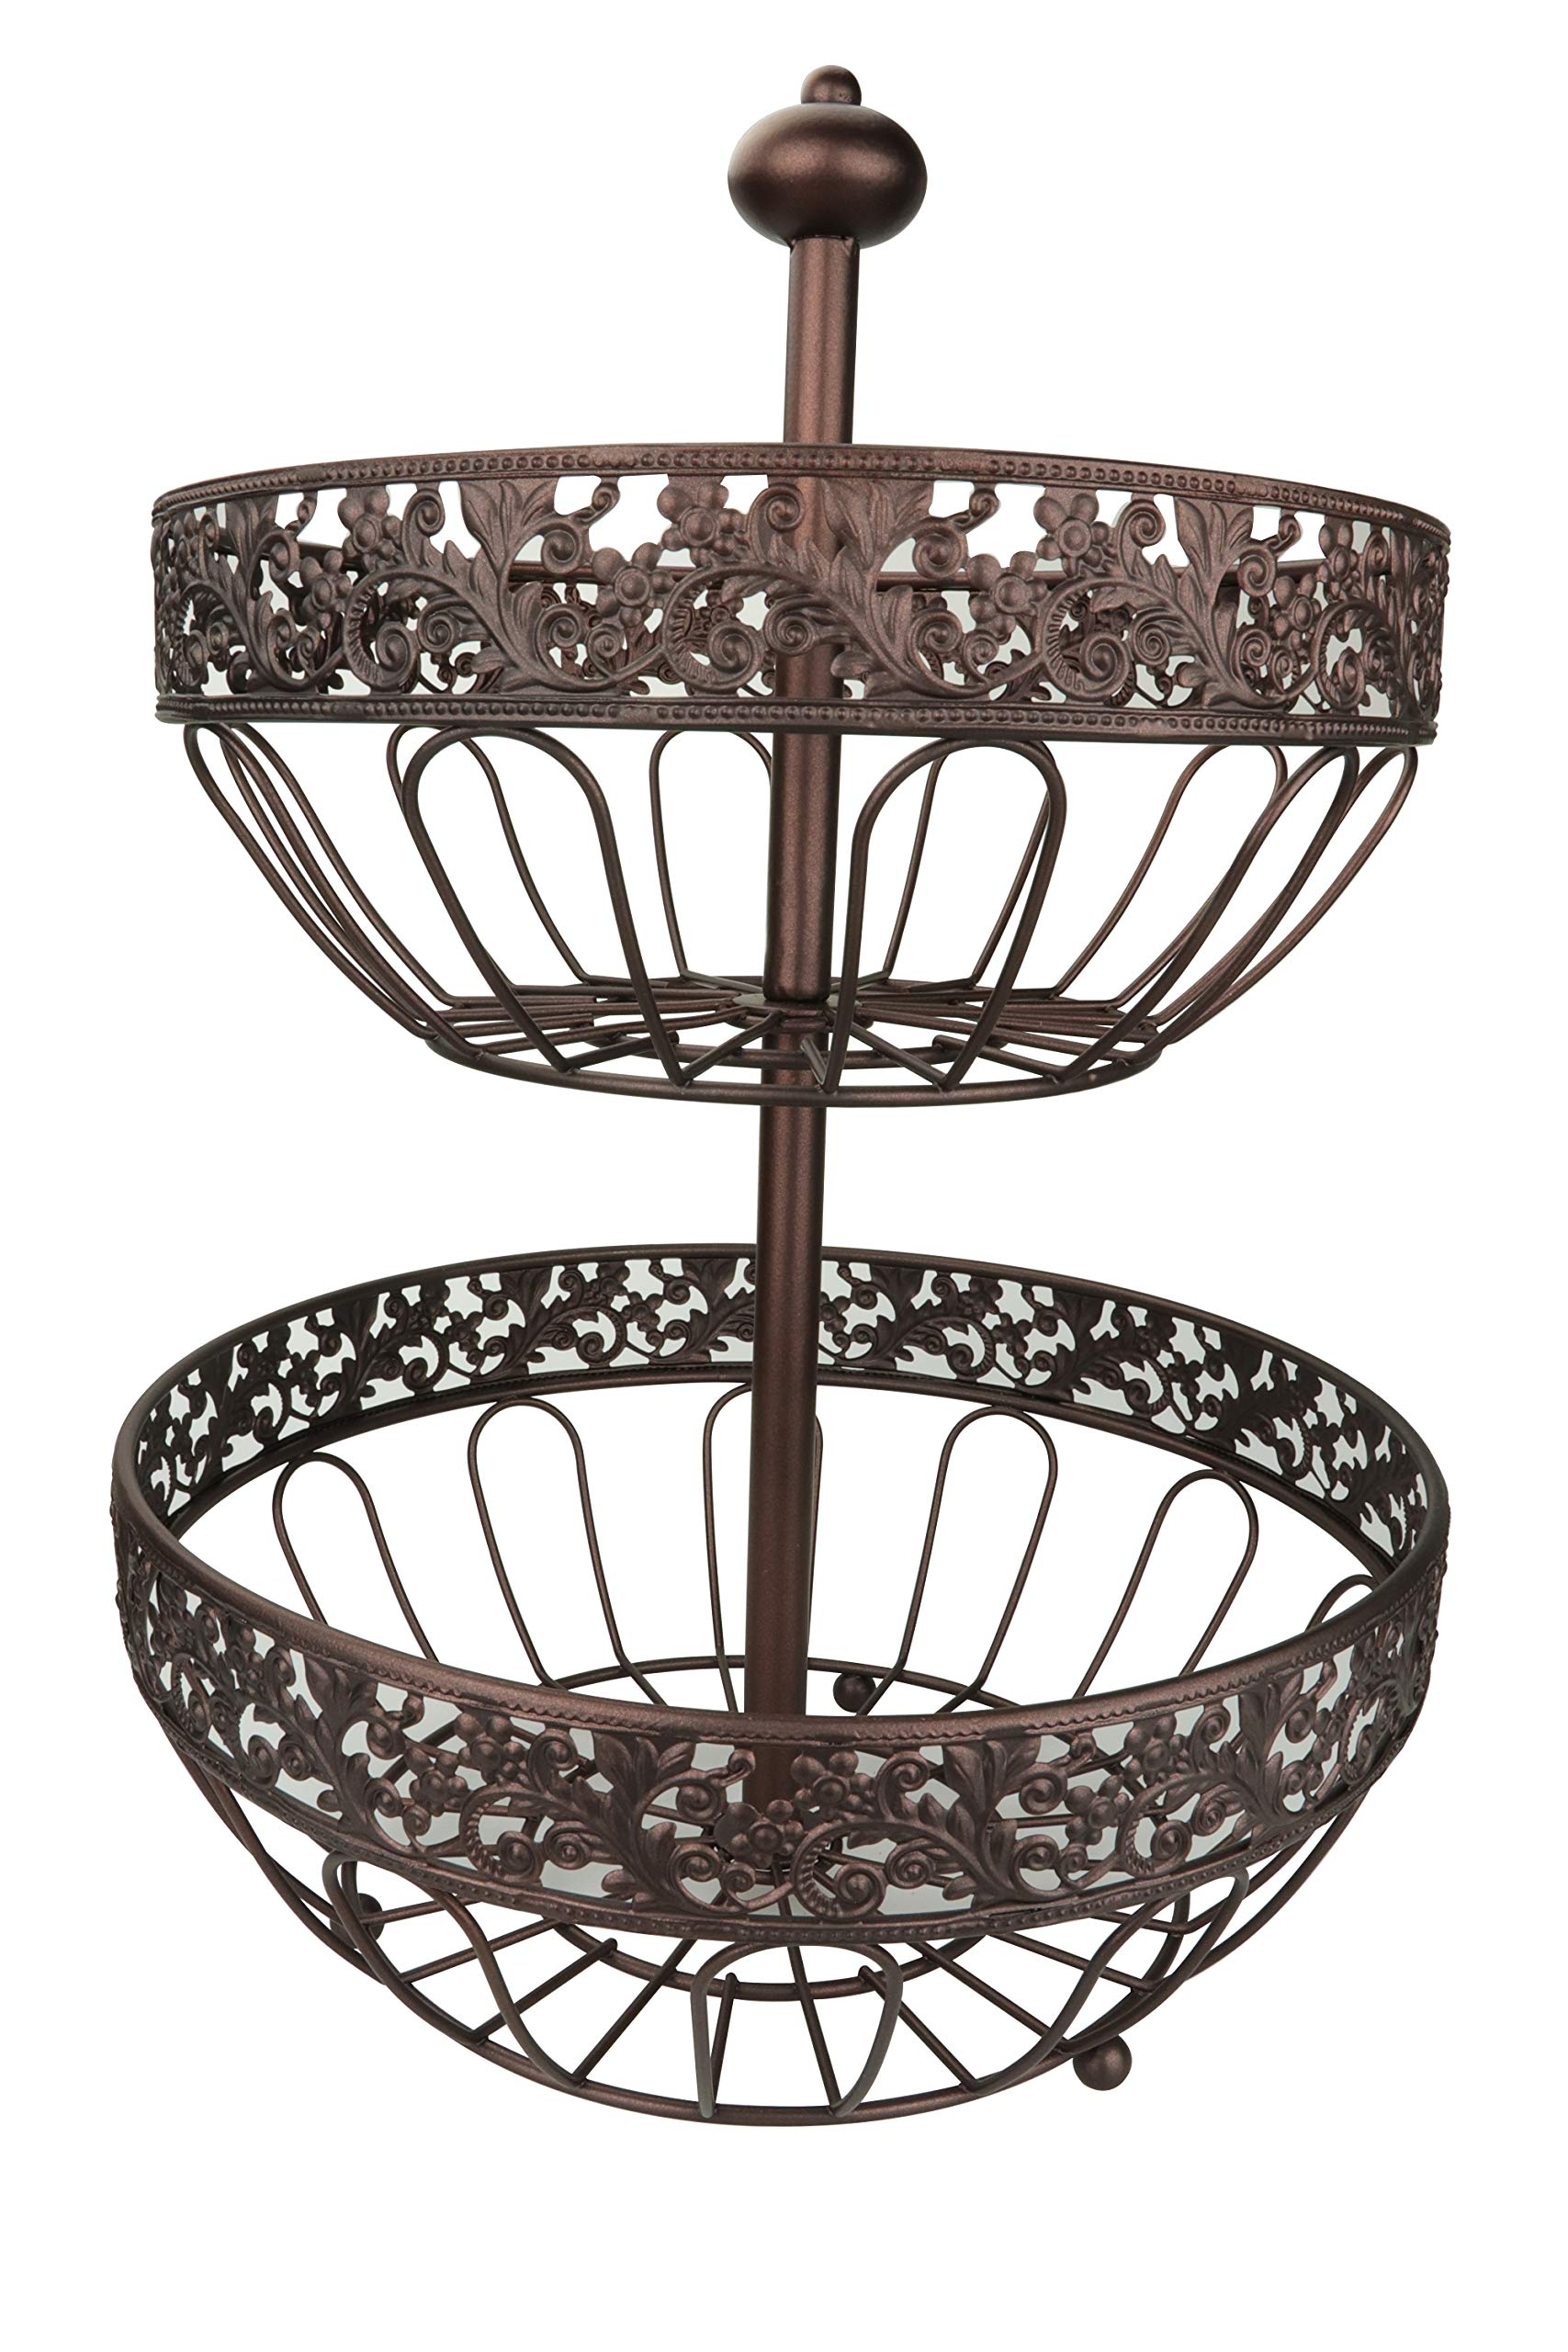 RosyLine 2-Tier Fruit Basket home Fruit Basket Decorative Display Stand, Multi purpose bowl, Home accent furnishings by DongJiang (Image #2)